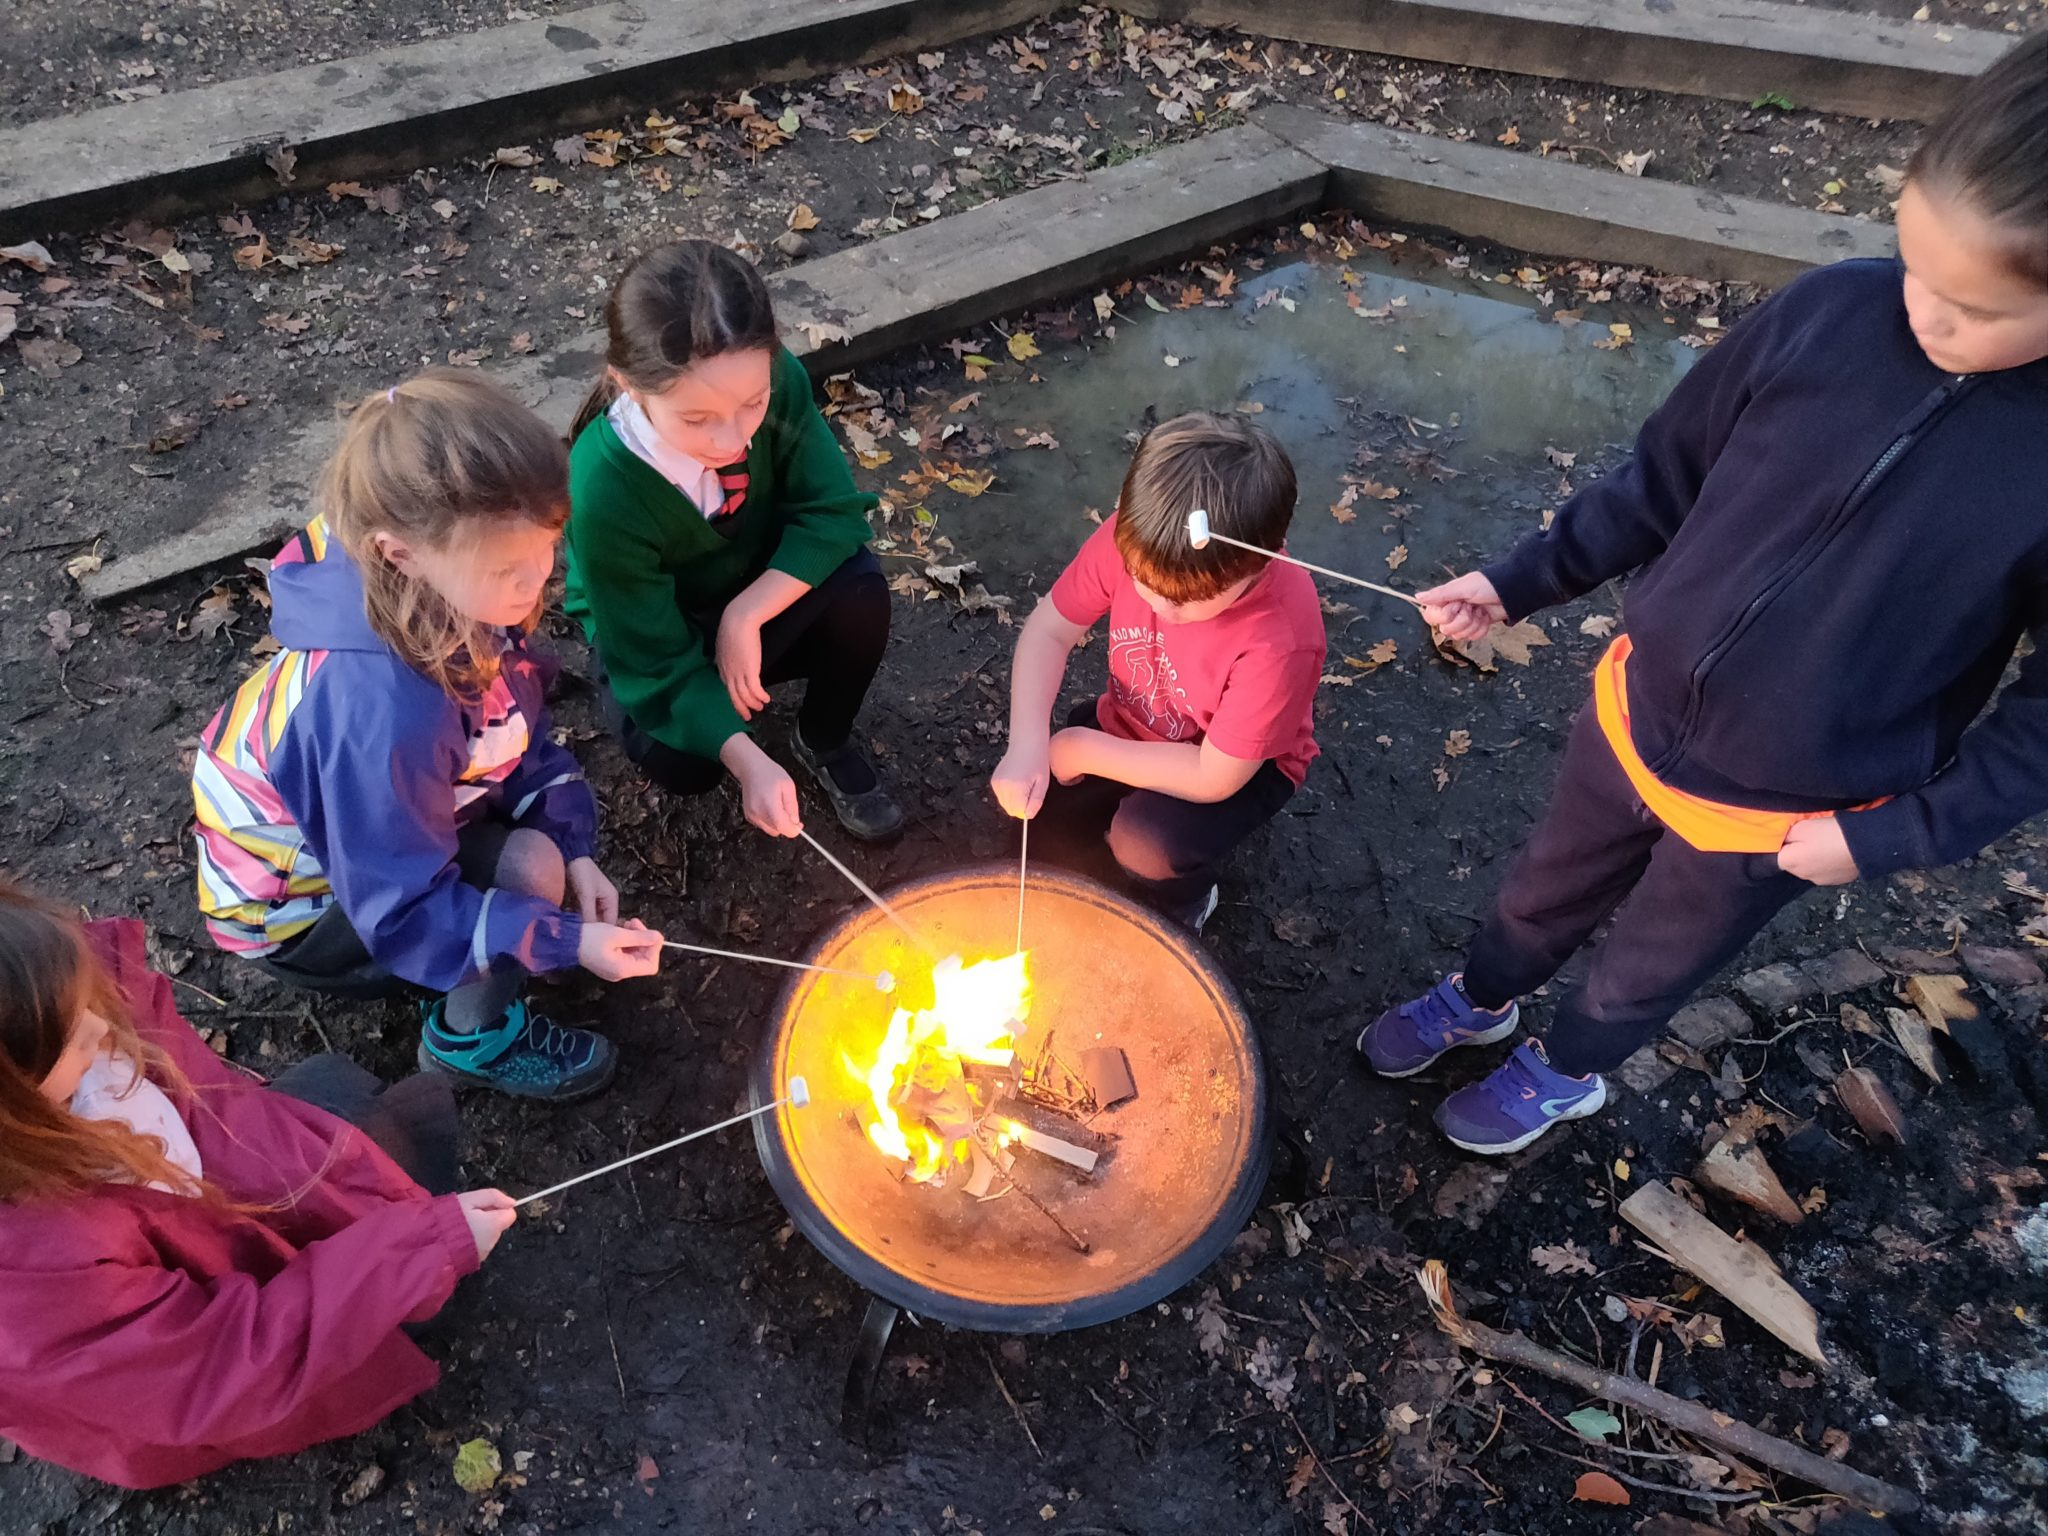 Making a campfire at the end of the day